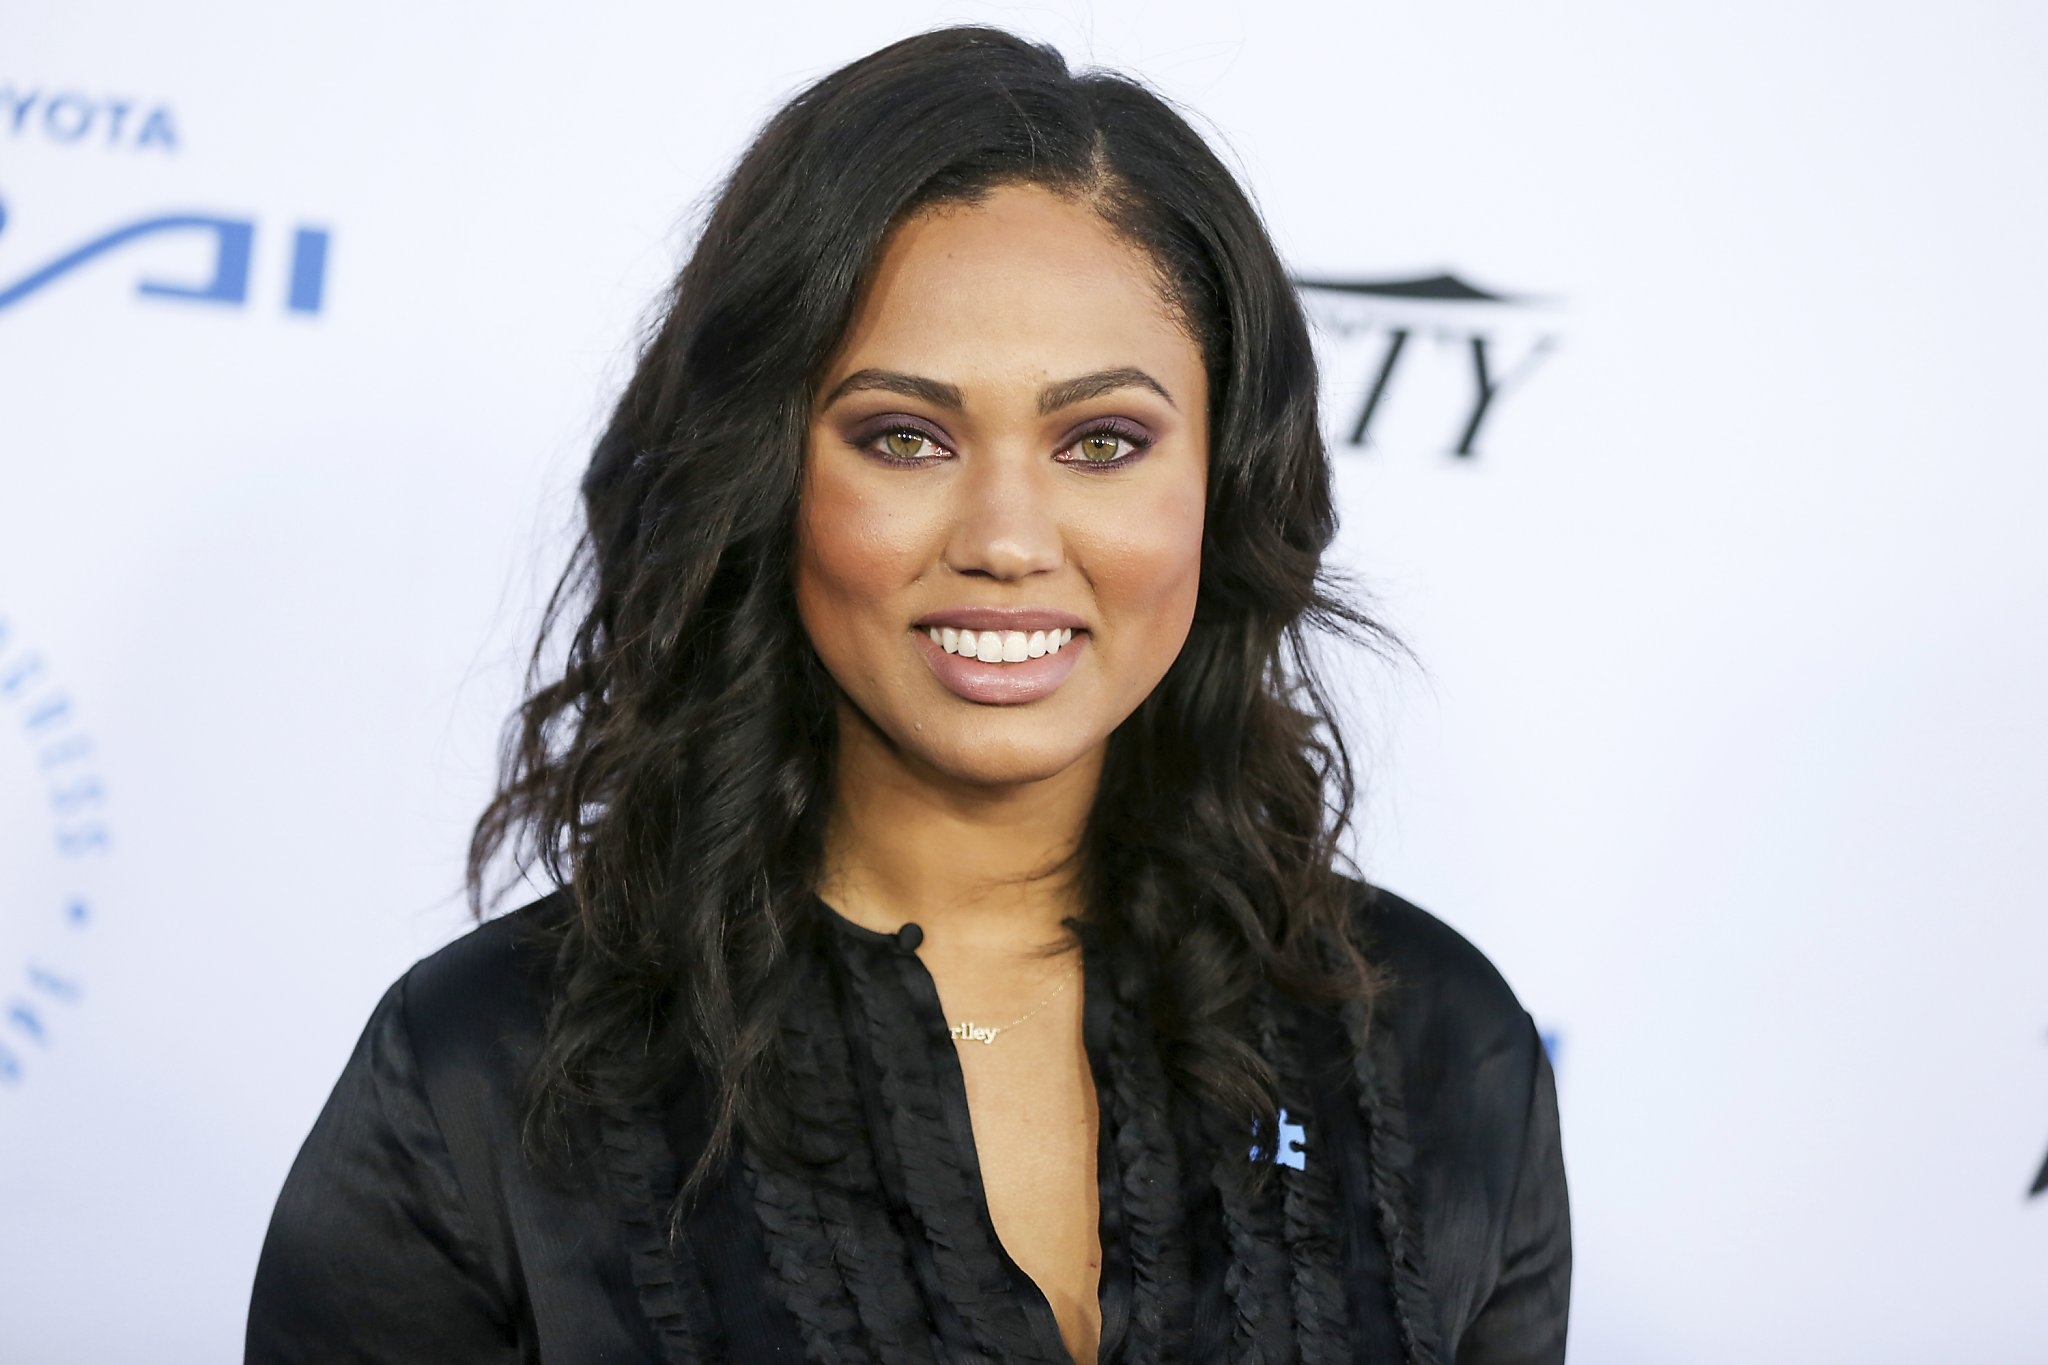 Former business partners sue Ayesha Curry, alleging she 'gutted' their value